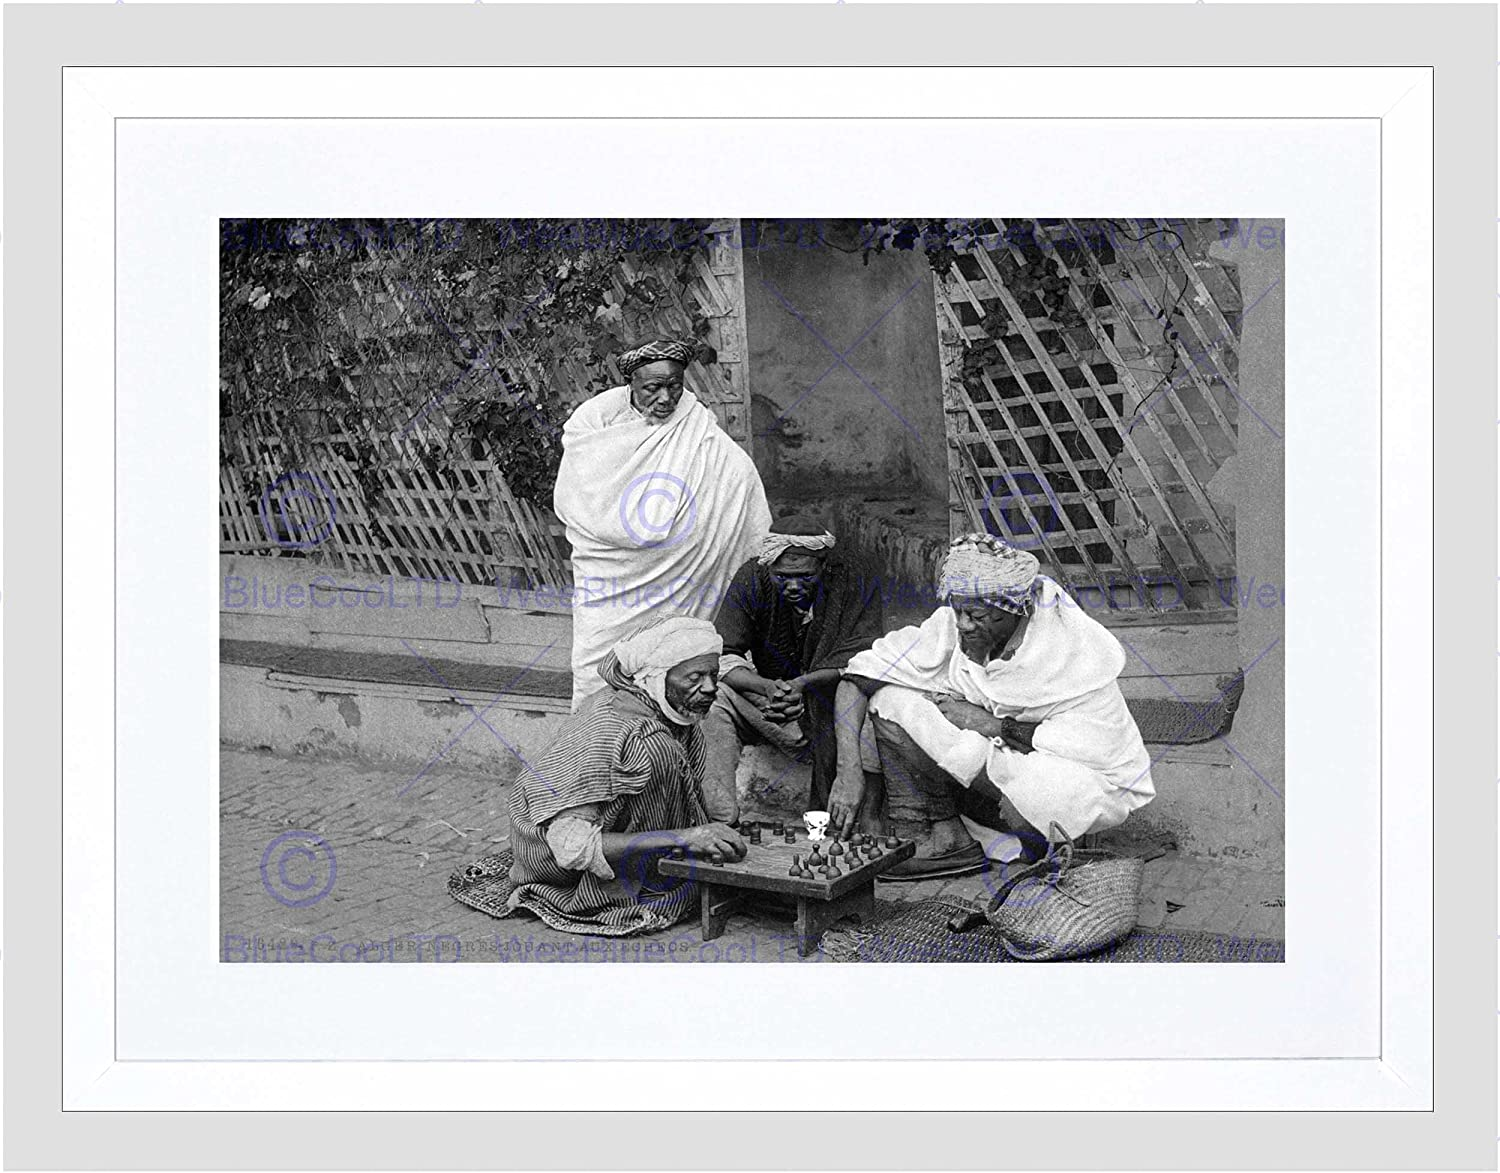 CHESS IN ALGERIA VINTAGE HISTORY OLD BW PHOTO PRINT POSTER 411BWB